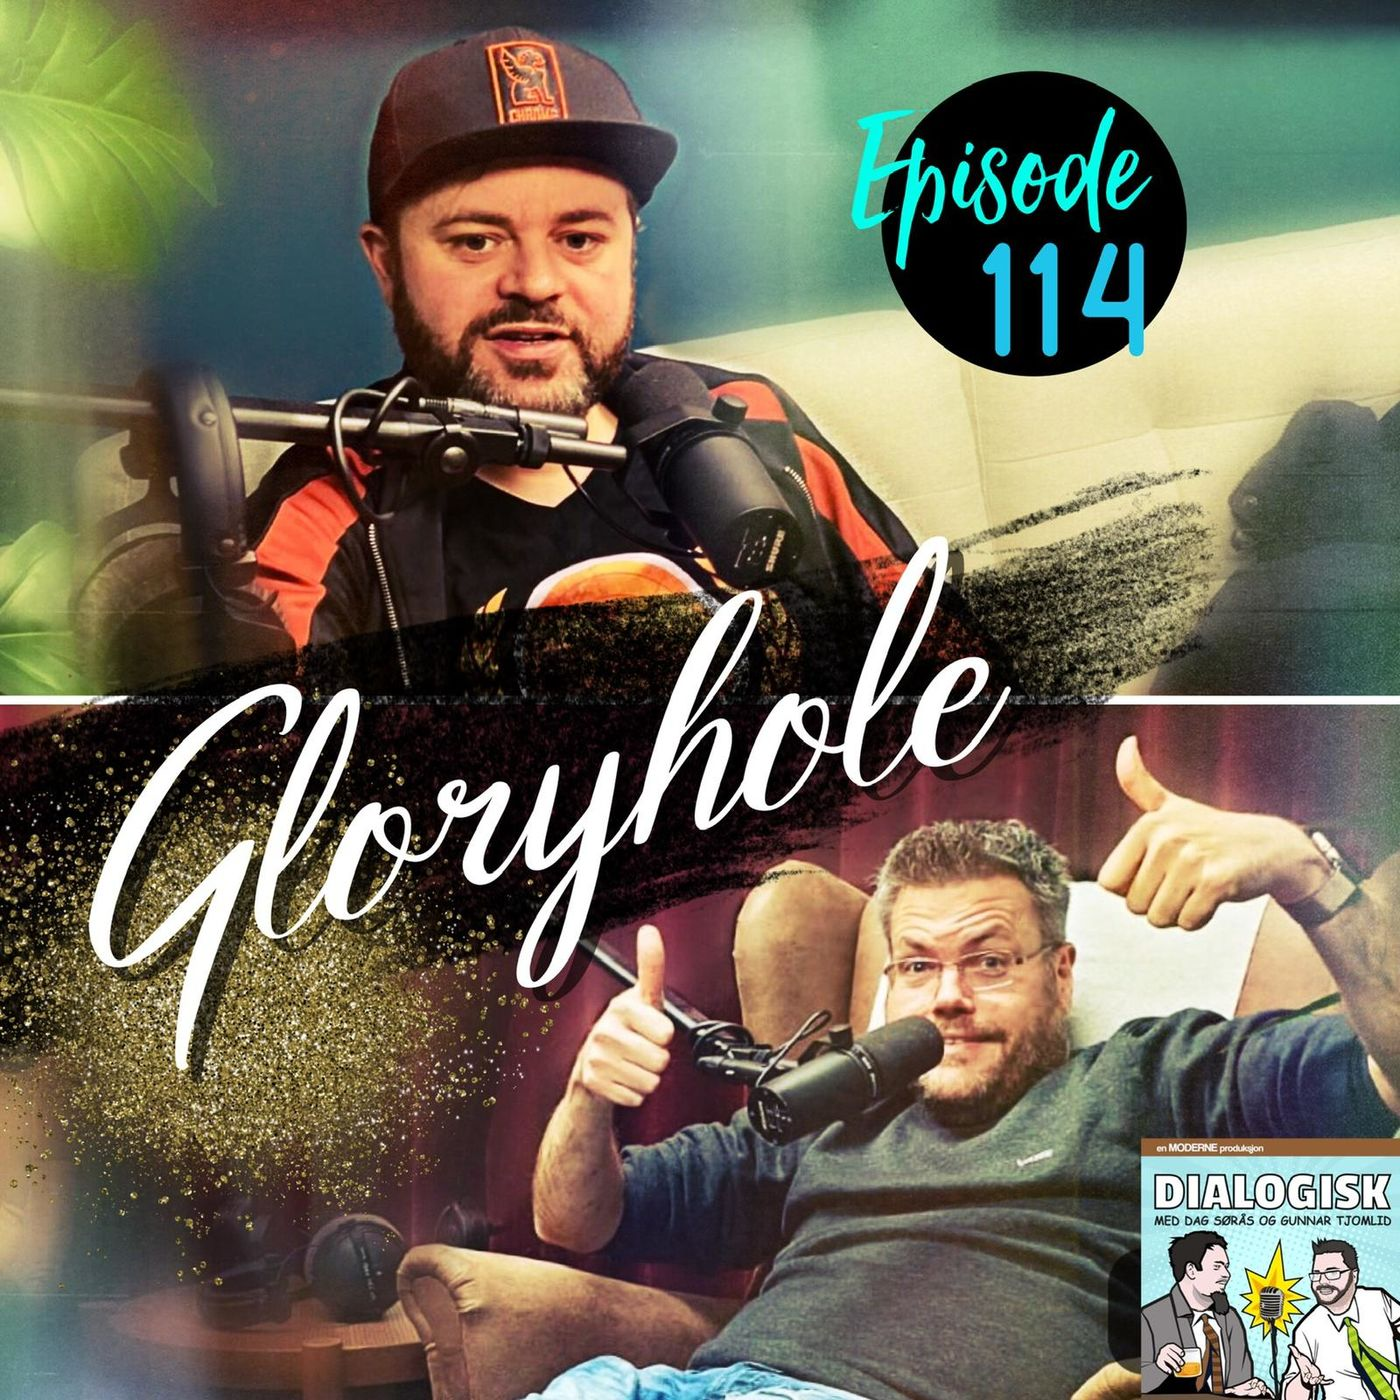 Episode 114: Gloryhole